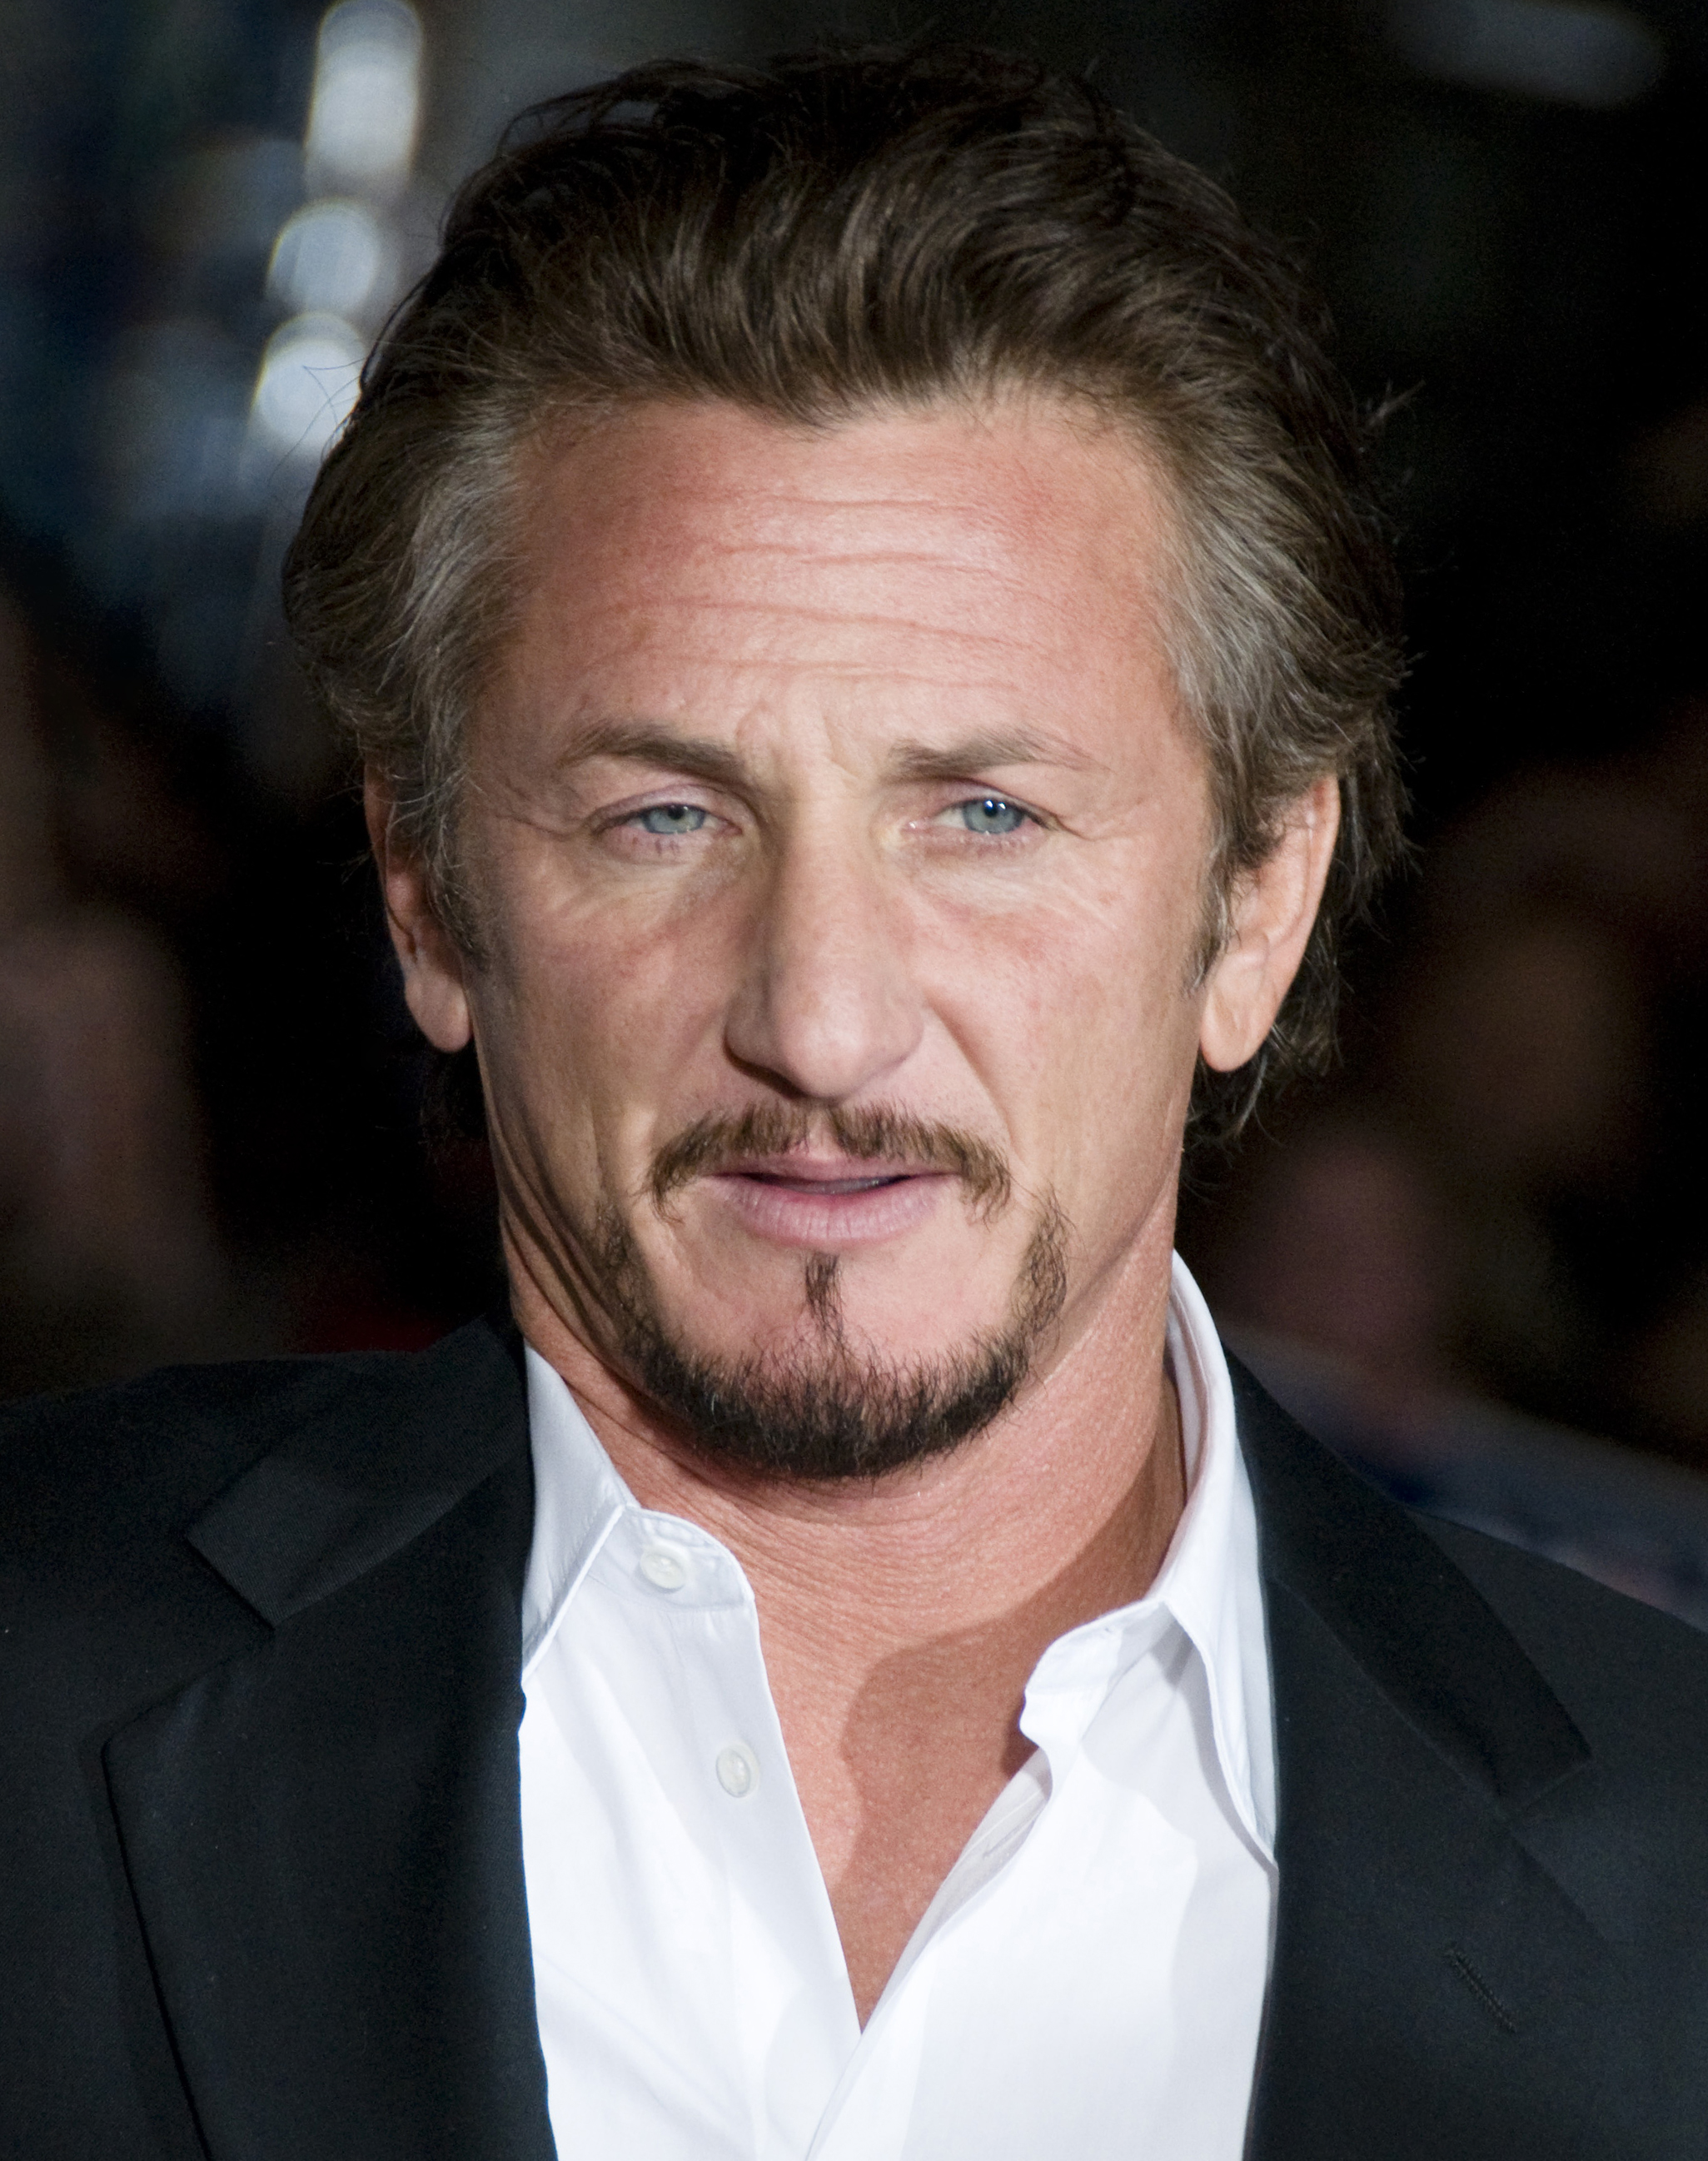 File:Seanpenn1.jpg - Wikimedia Commons